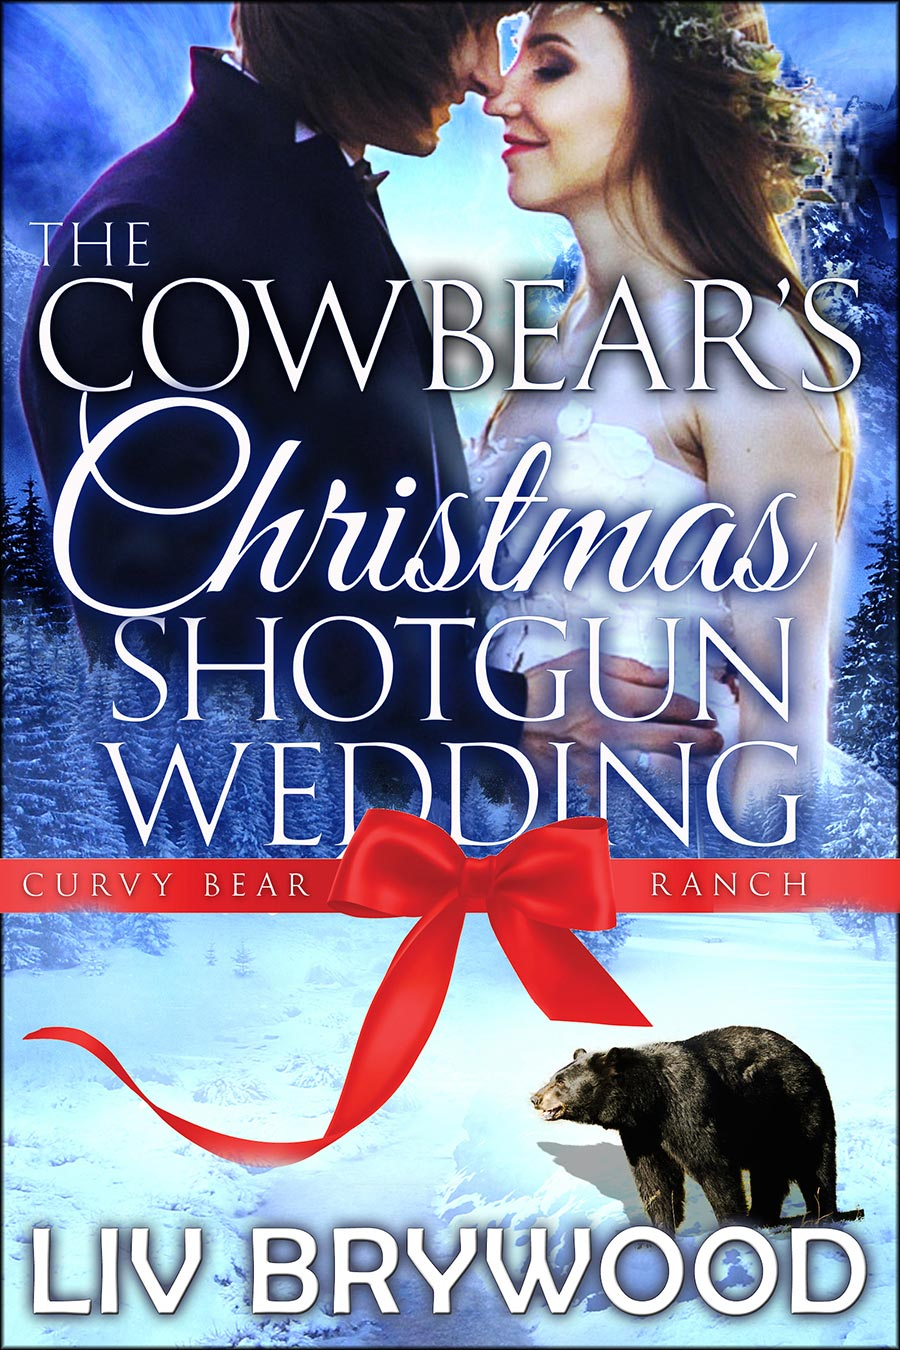 The-Cowbear's-Christmas-Shotgun-Wedding-1600.jpg